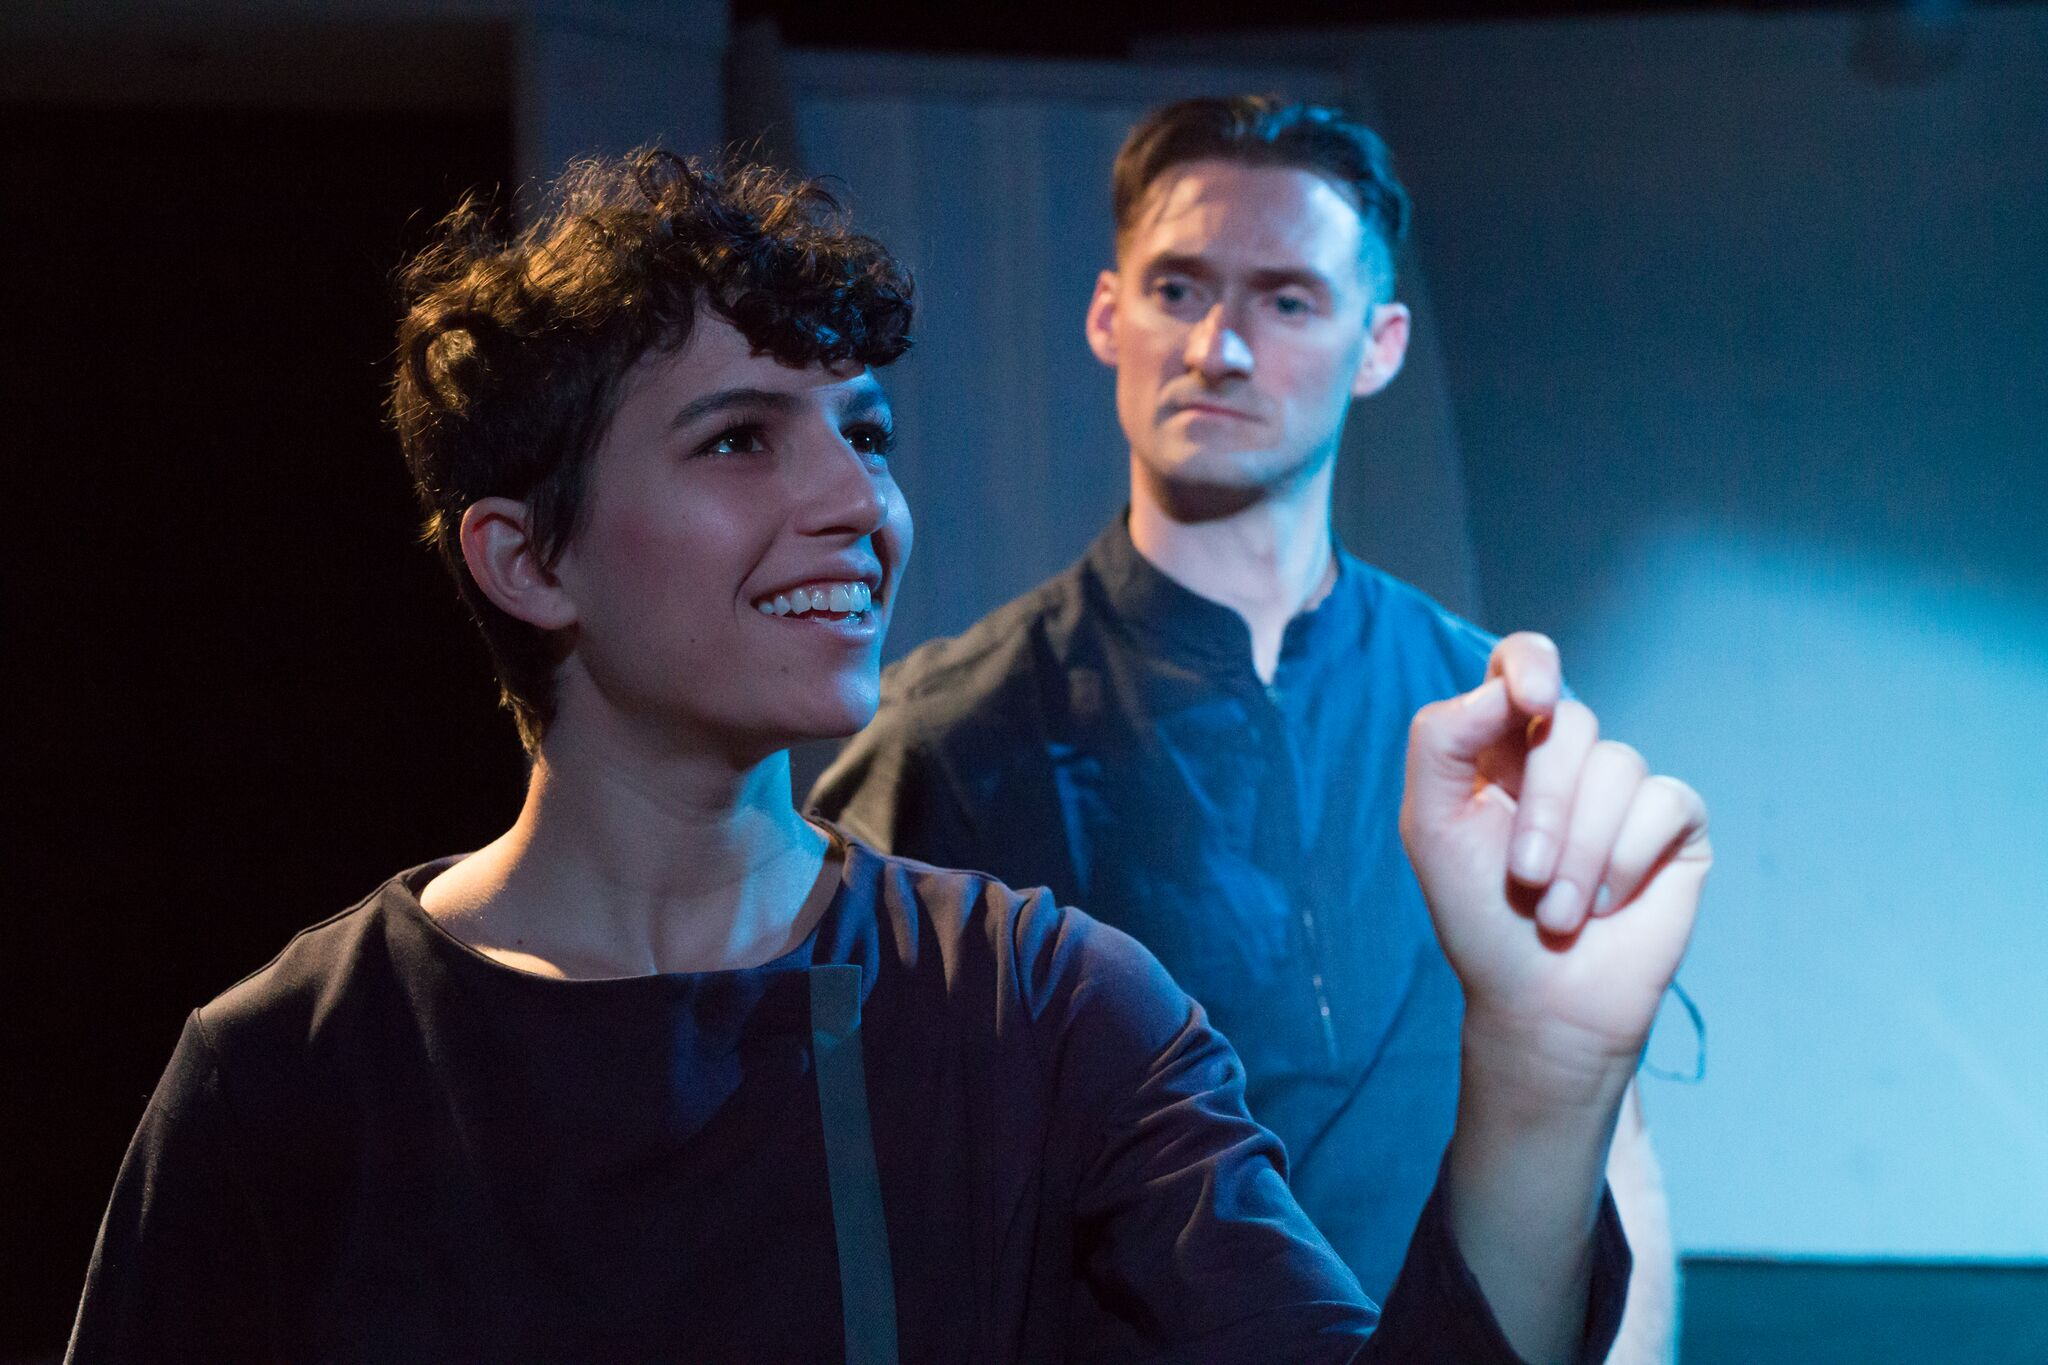 Image: Nicole Orabona and Ian Potter as Nora and Constantine in  The Aurora Project (Image Source: Dawen Huang for The Navigators)